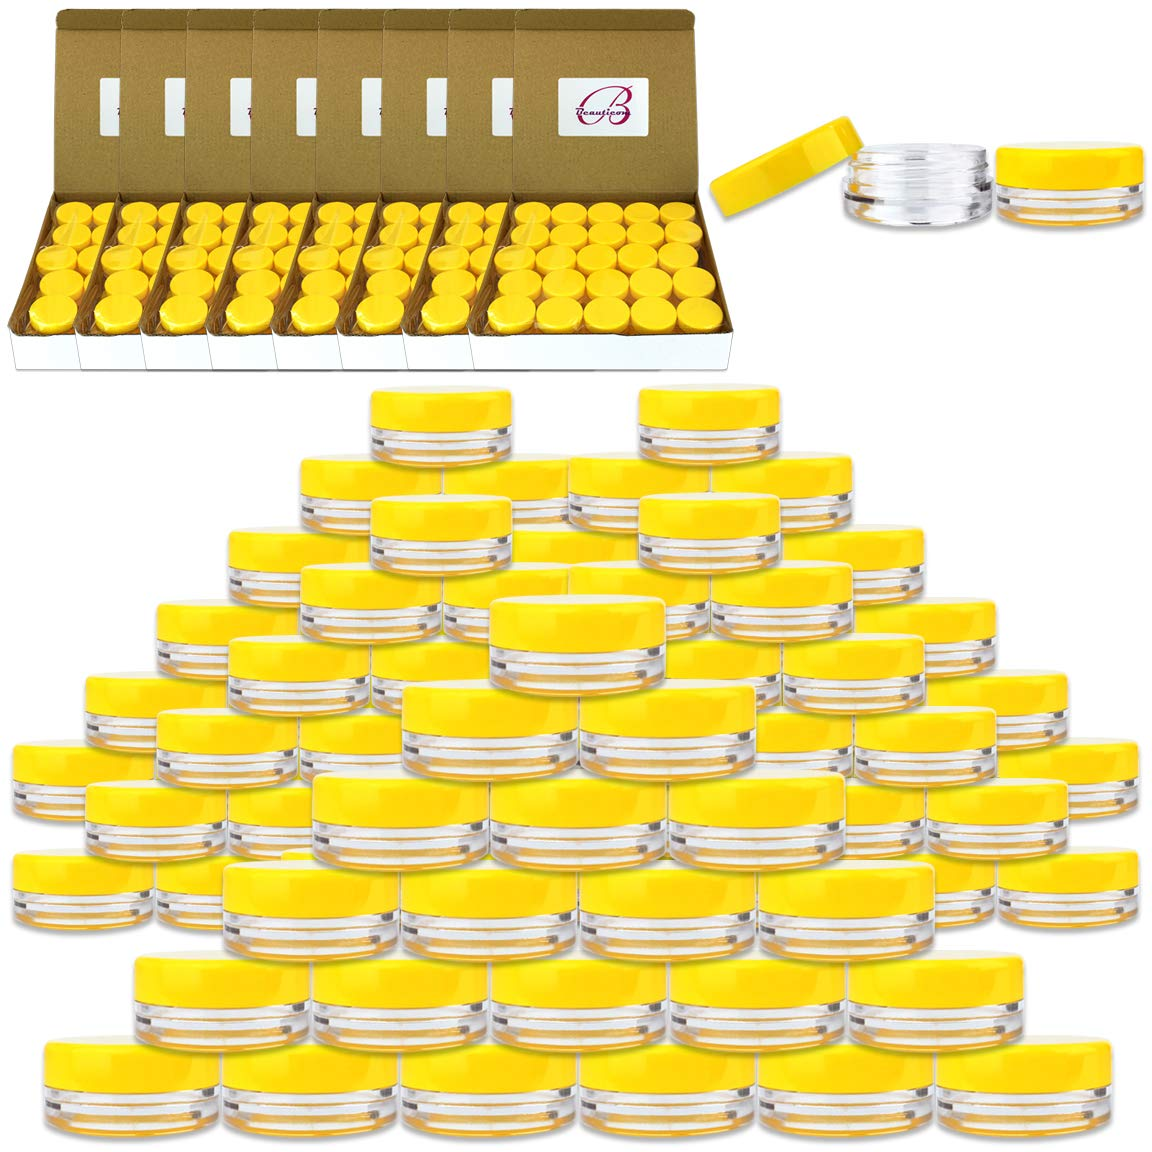 Beauticom 3 Gram / 3 ML (Quantity: 1000 Pieces) Round Acrylic Small Sample Jar Containers with Yellow Lids for Makeup Beauty Cosmetics Lotion Salves Scrubs Ointments